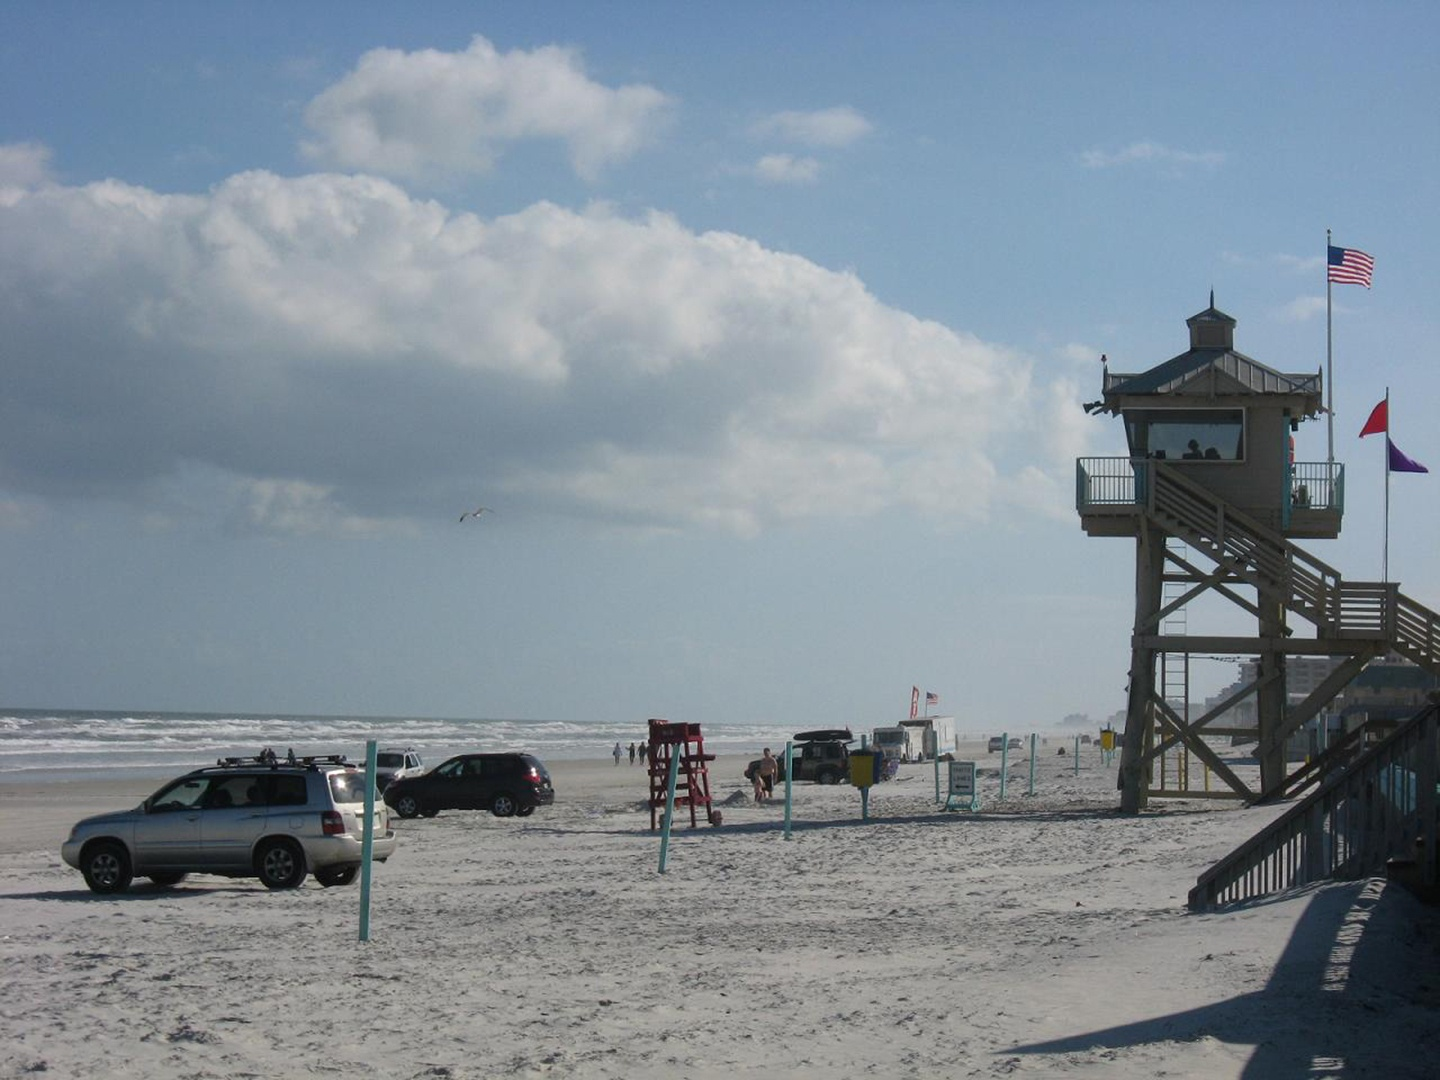 Visit New Smyrna Beach, FL